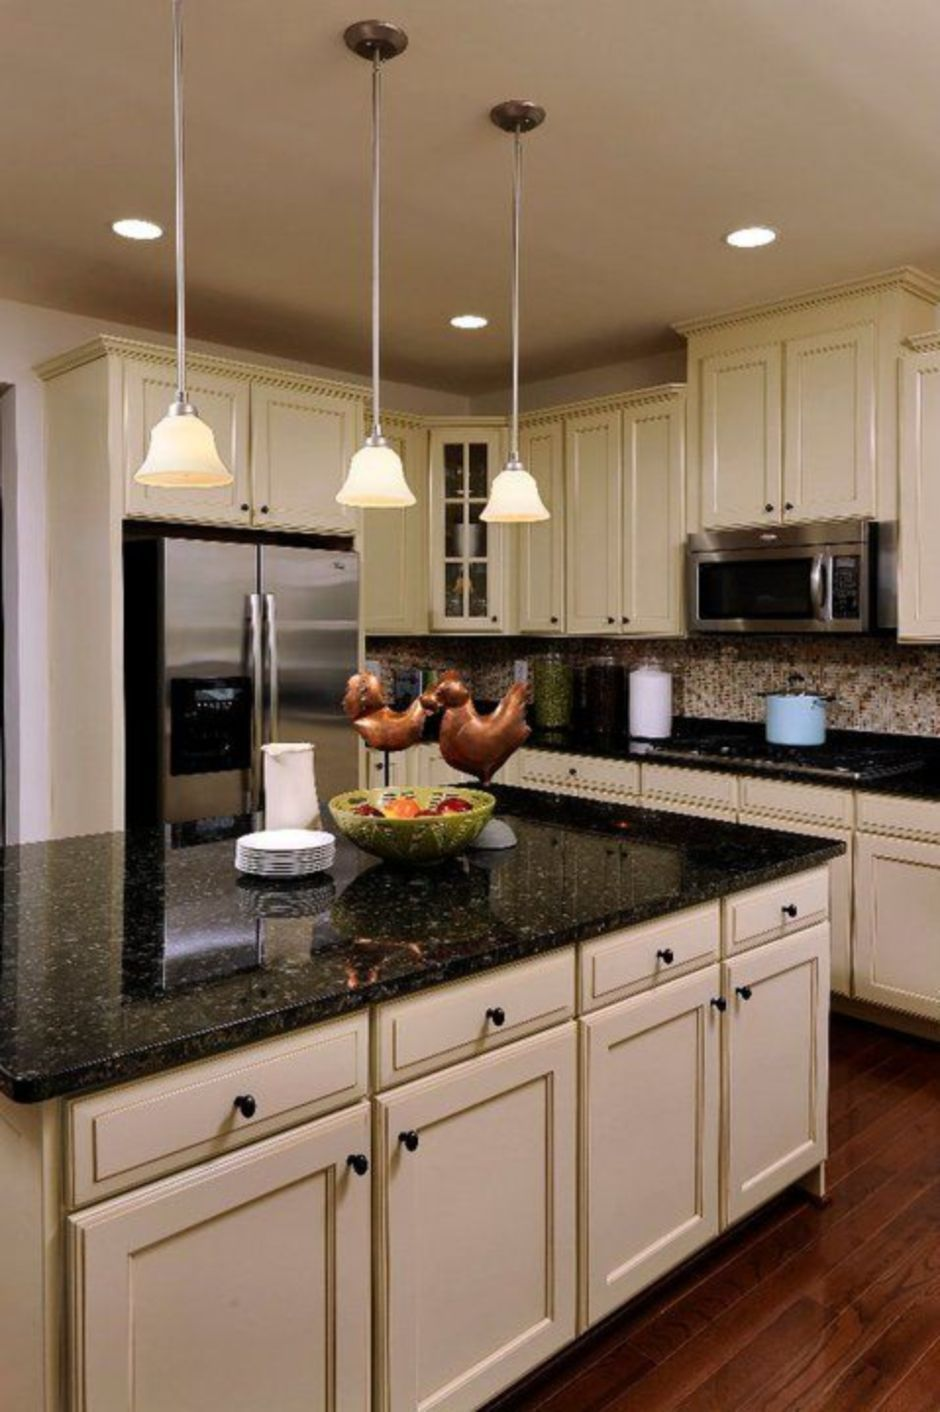 Elegant Kitchen Light Cabinets With Dark Countertops 56 Hoommy Com In 2020 Kitchen Cabinets Decor Kitchen Inspirations Kitchen Remodel